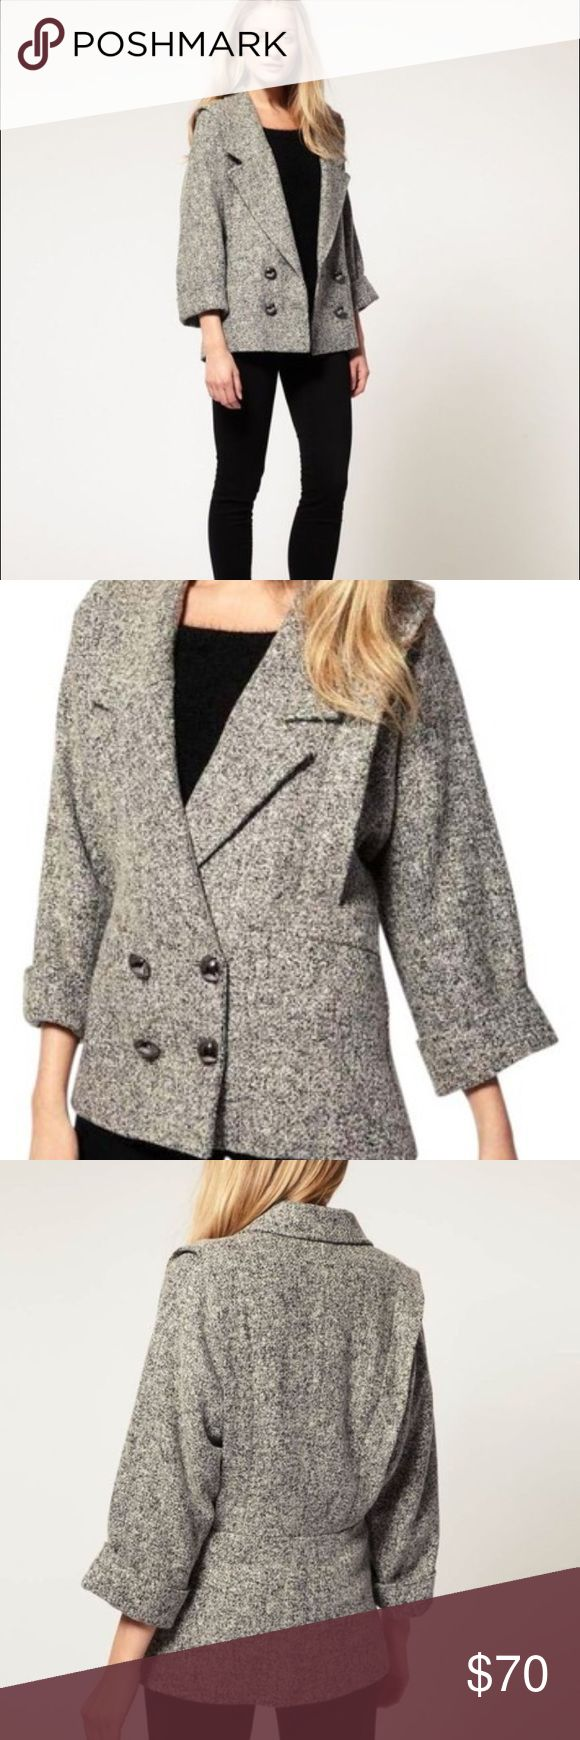 French Connection Kezia Coating Batwing Jacket Stunning French Connection Grey Kezia Coating Batwing Double Breasted Jacket in size 2. New with tags attached, includes extra button. French Connection Jackets & Coats